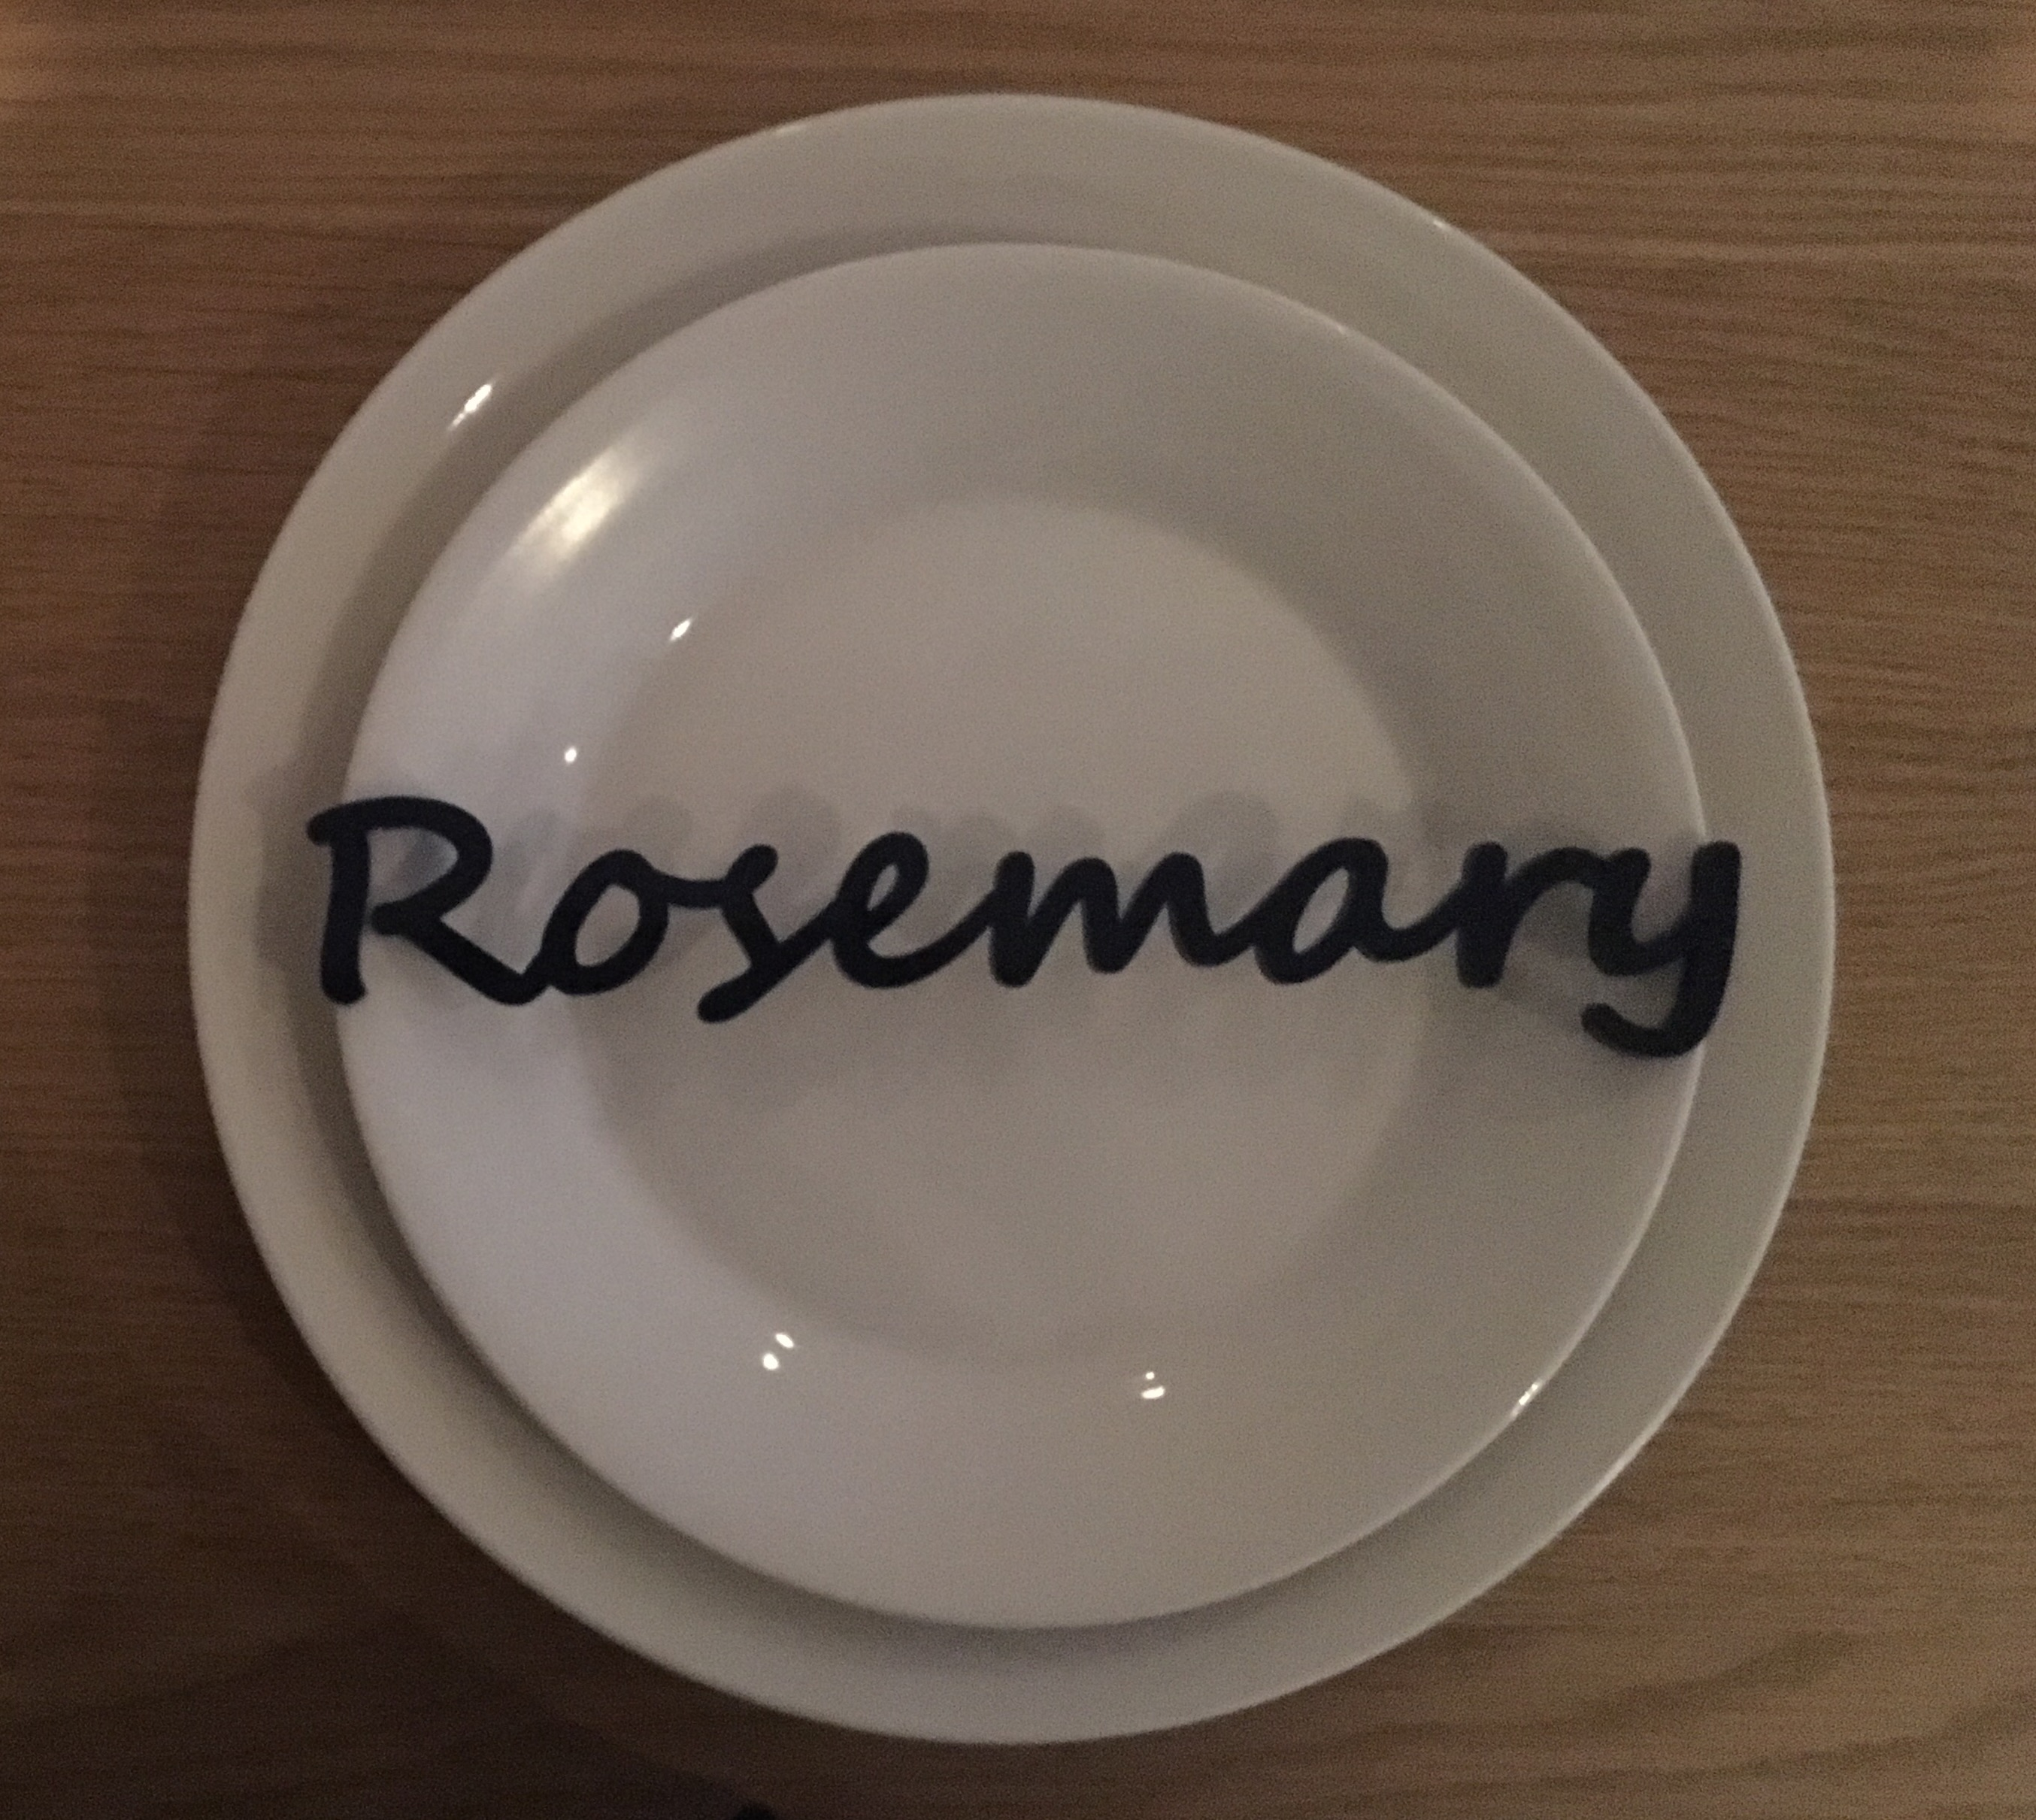 Rosemary name place